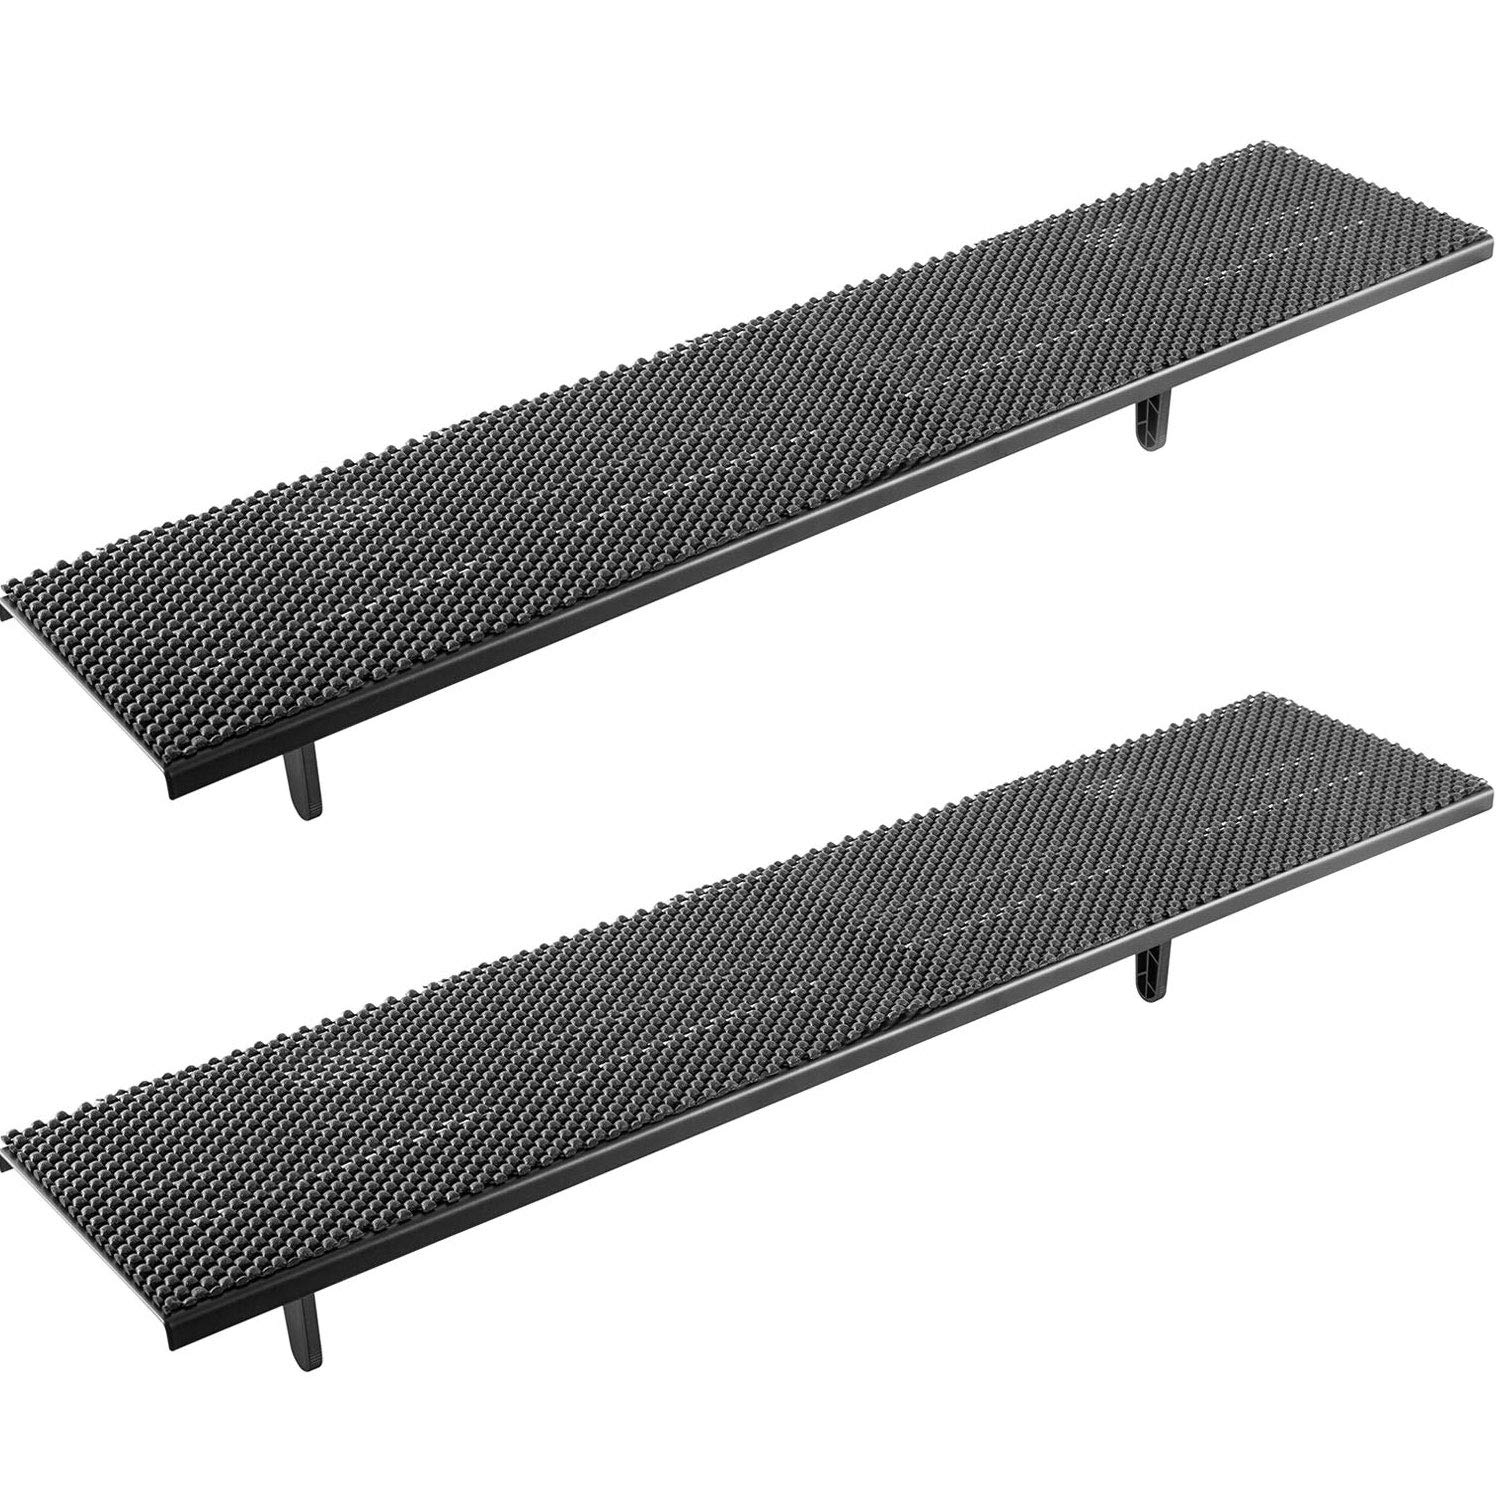 WALI TV Top Shelf 23.6 Inch Flat Panel for Streaming Devices, Media Boxes, Speakers and Home Decor (TSH002-2), 2 Pack, Black